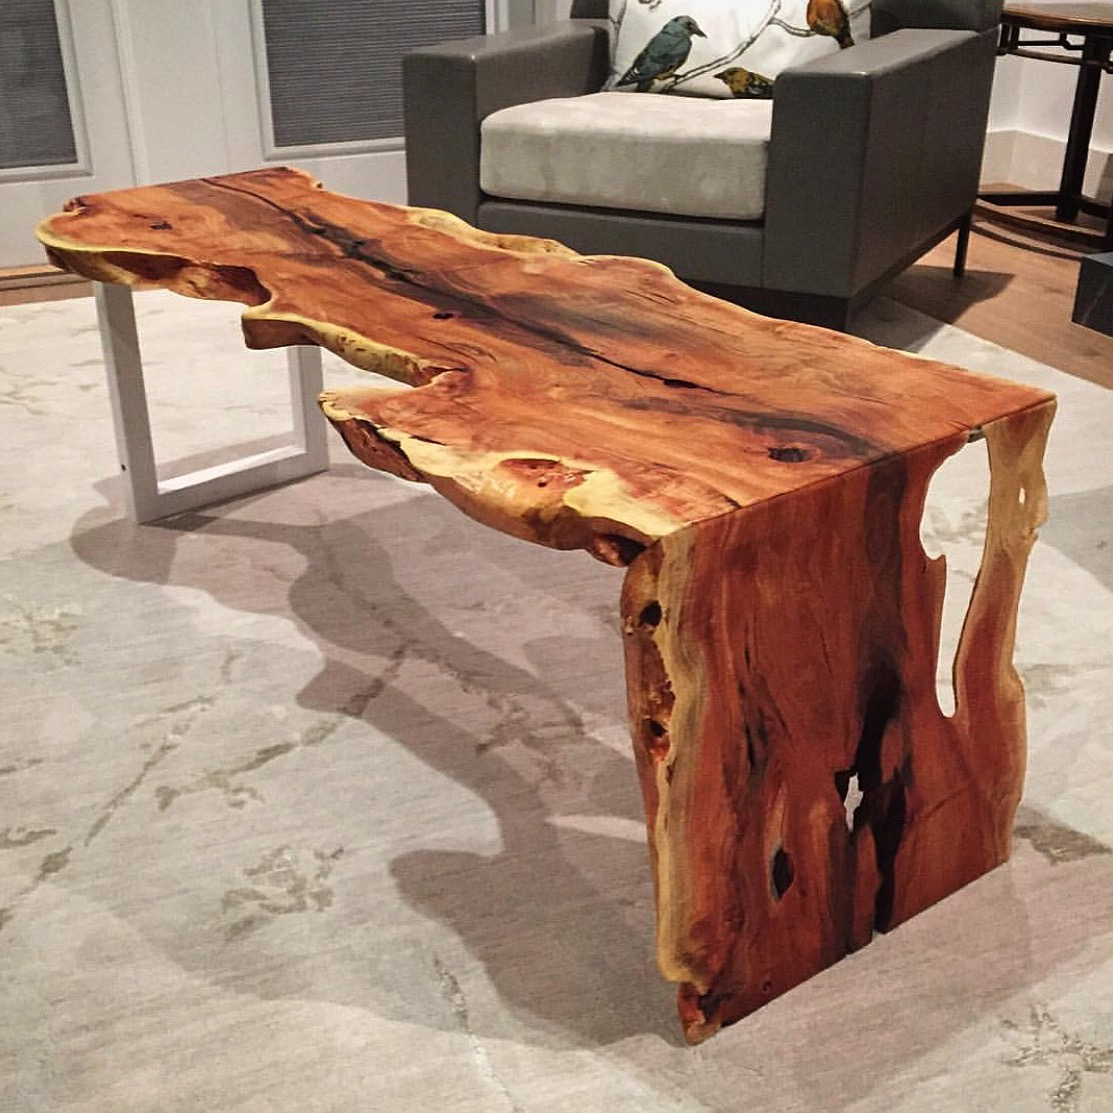 Parota dining table by ben wheatley tropical exotic hardwoods - How About This Awesome Live Edge Carob Table By Thdecks